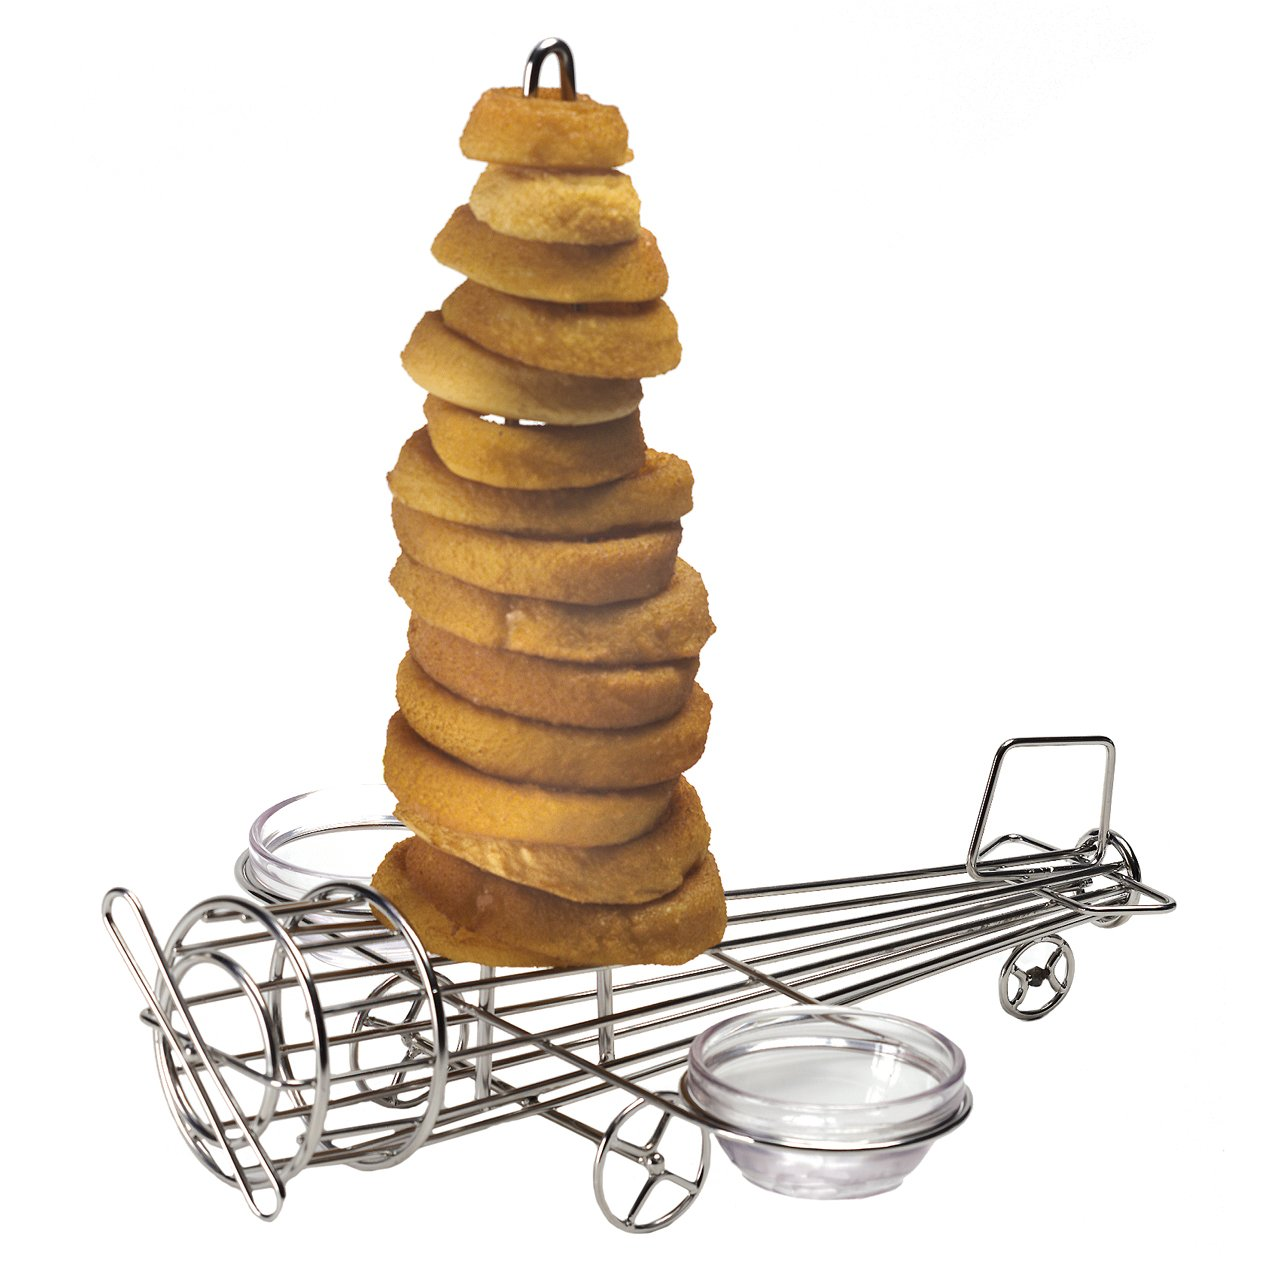 """12"""" x 11"""" Airplane Shape Onion Ring Tower with Two Sauce Cup Holders, Stainless Steel by GET 4-882808 (Sauce Cups Sold Separately)"""